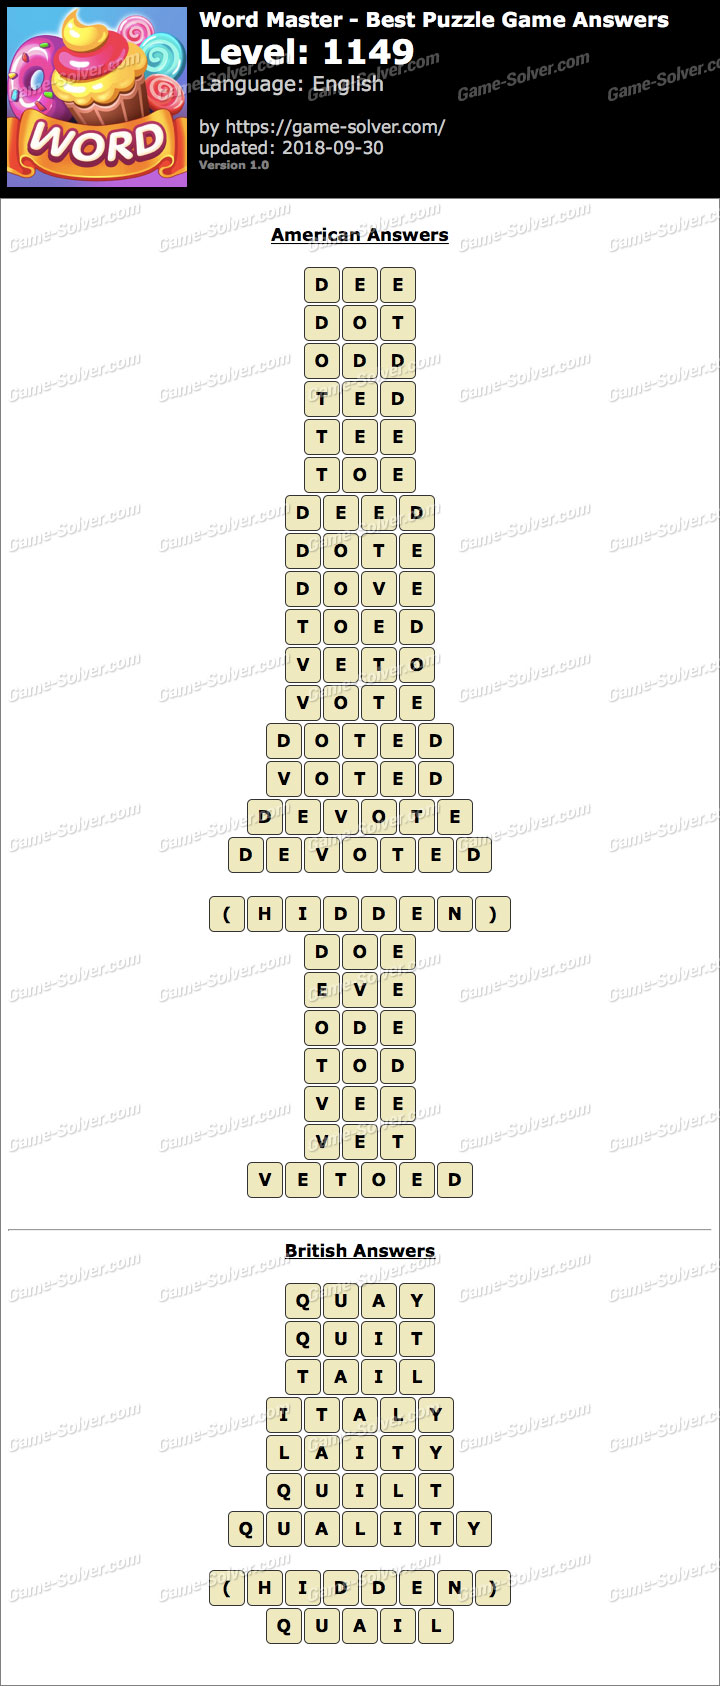 Word Master-Best Puzzle Game Level 1149 Answers